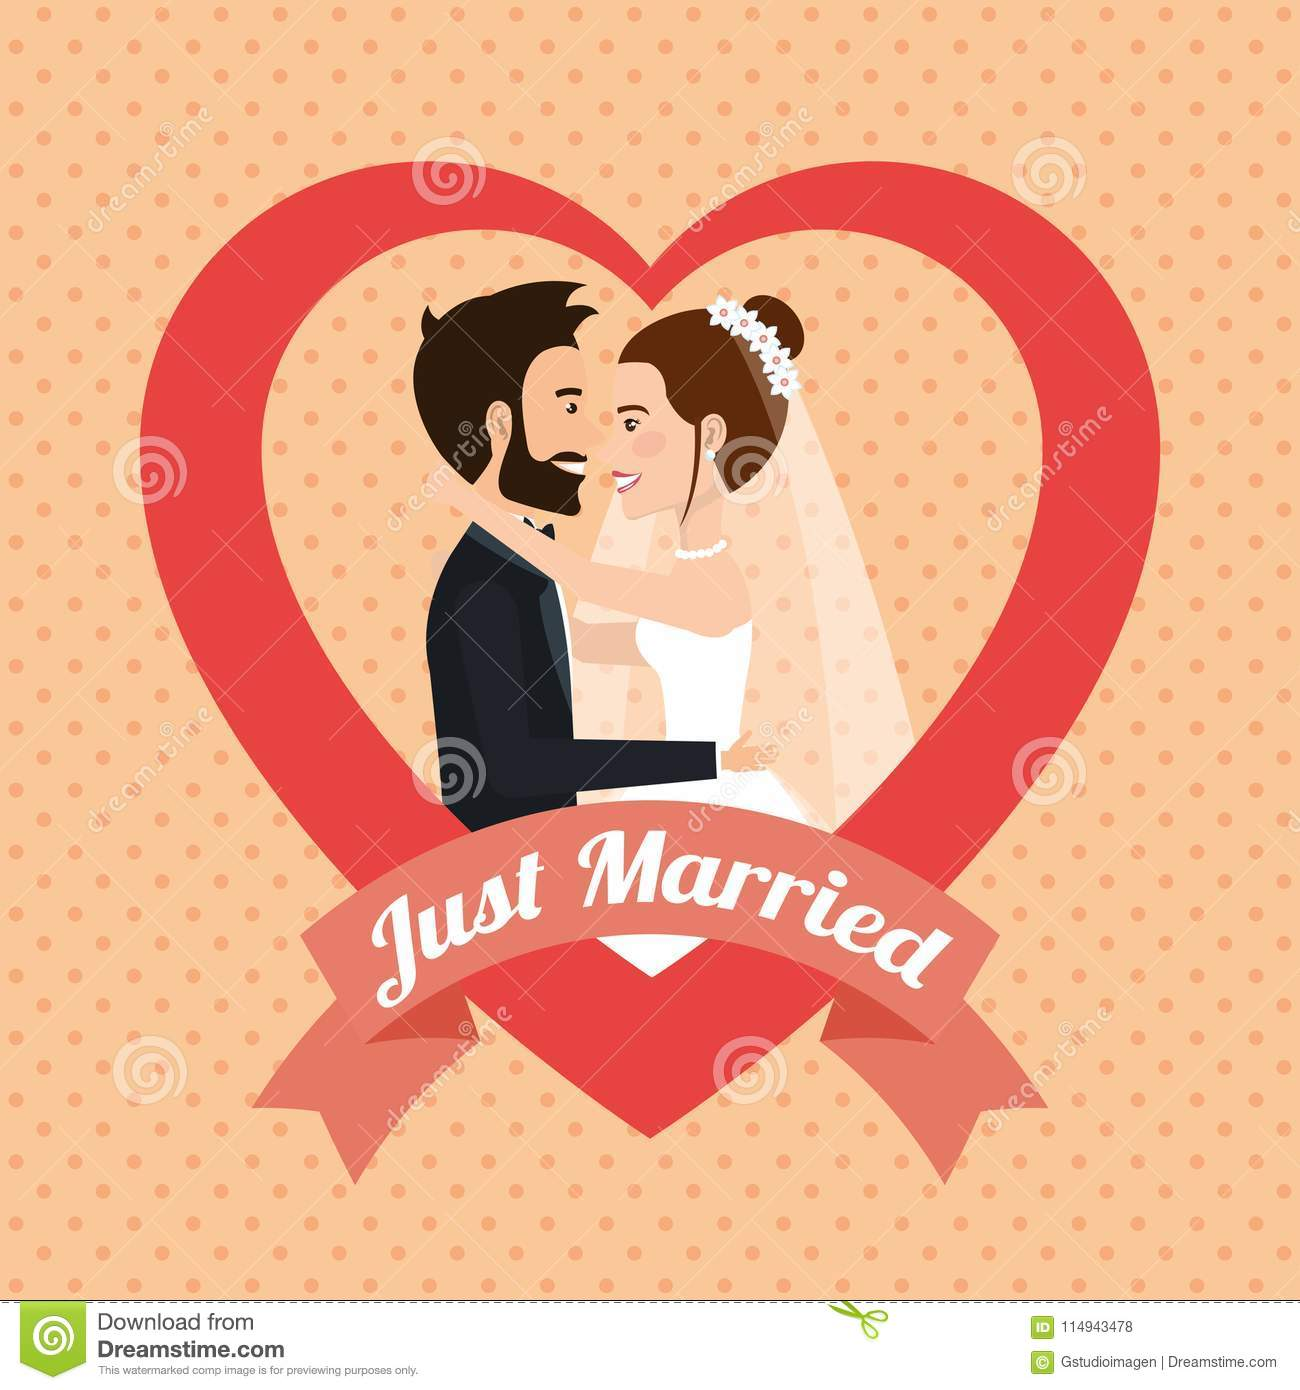 Just Married Couple Kissing Avatars Characters Stock